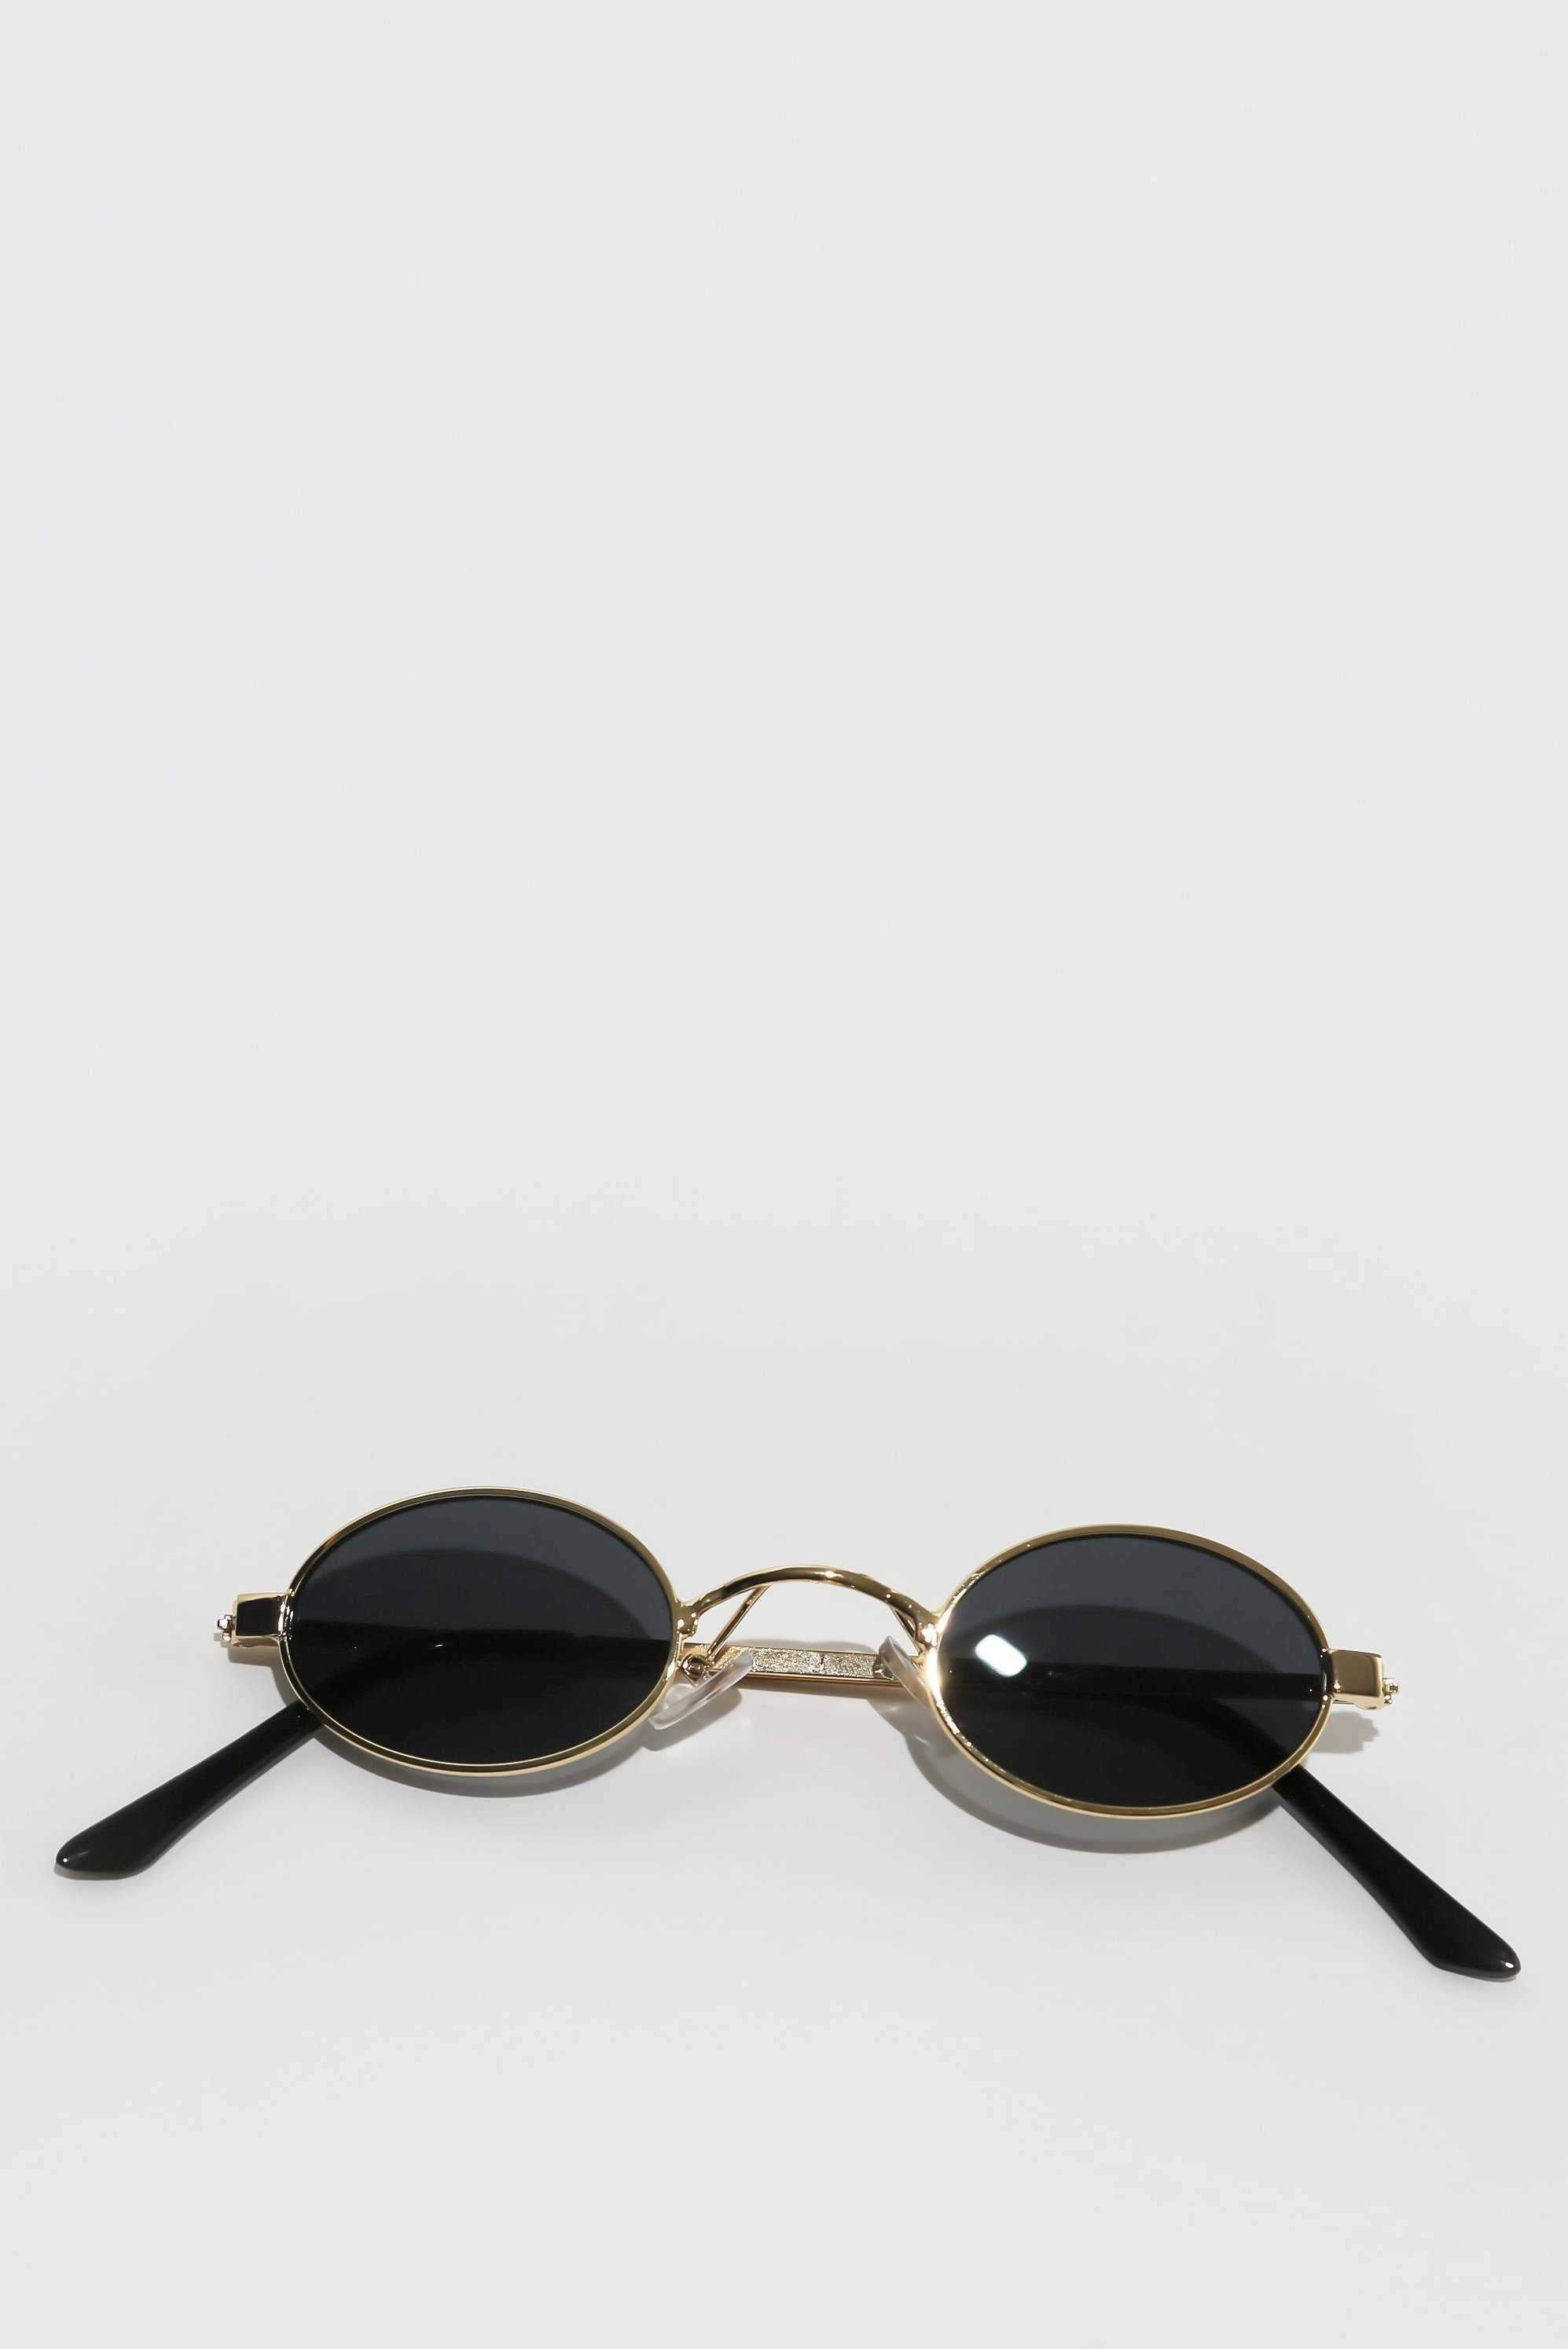 Royal Girl Vintage Sunglasses